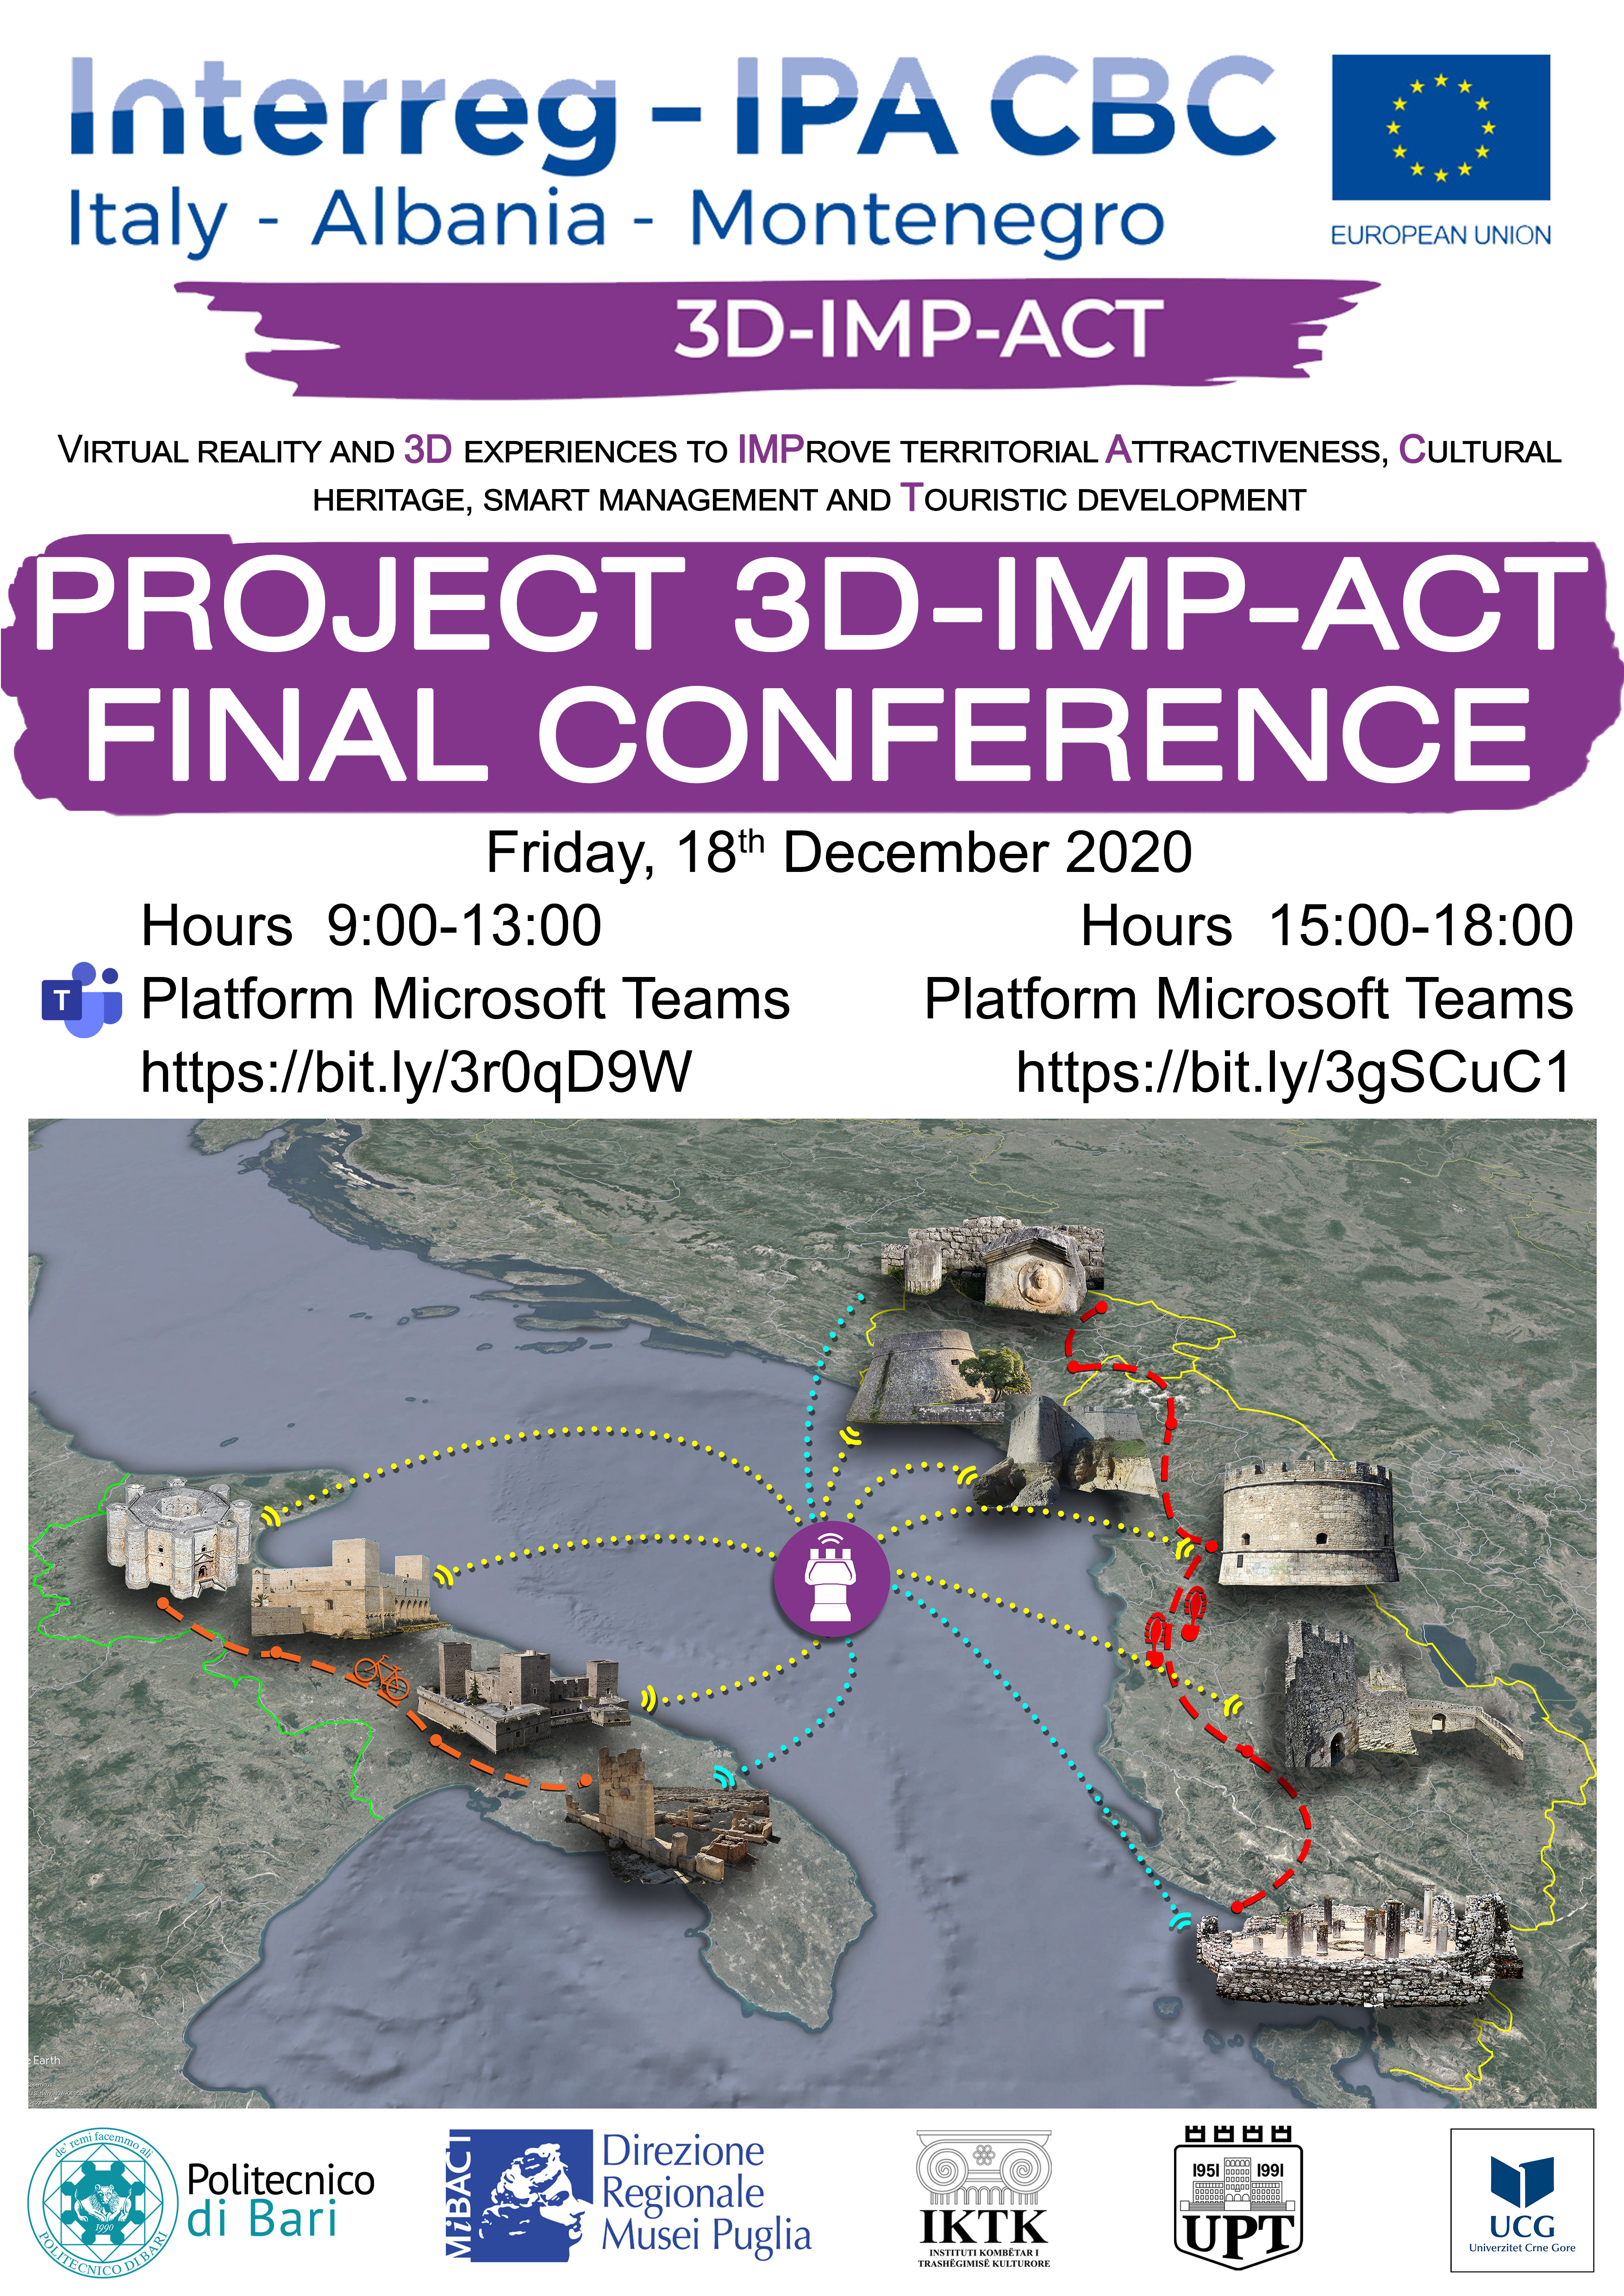 Final Conference and workshops poster